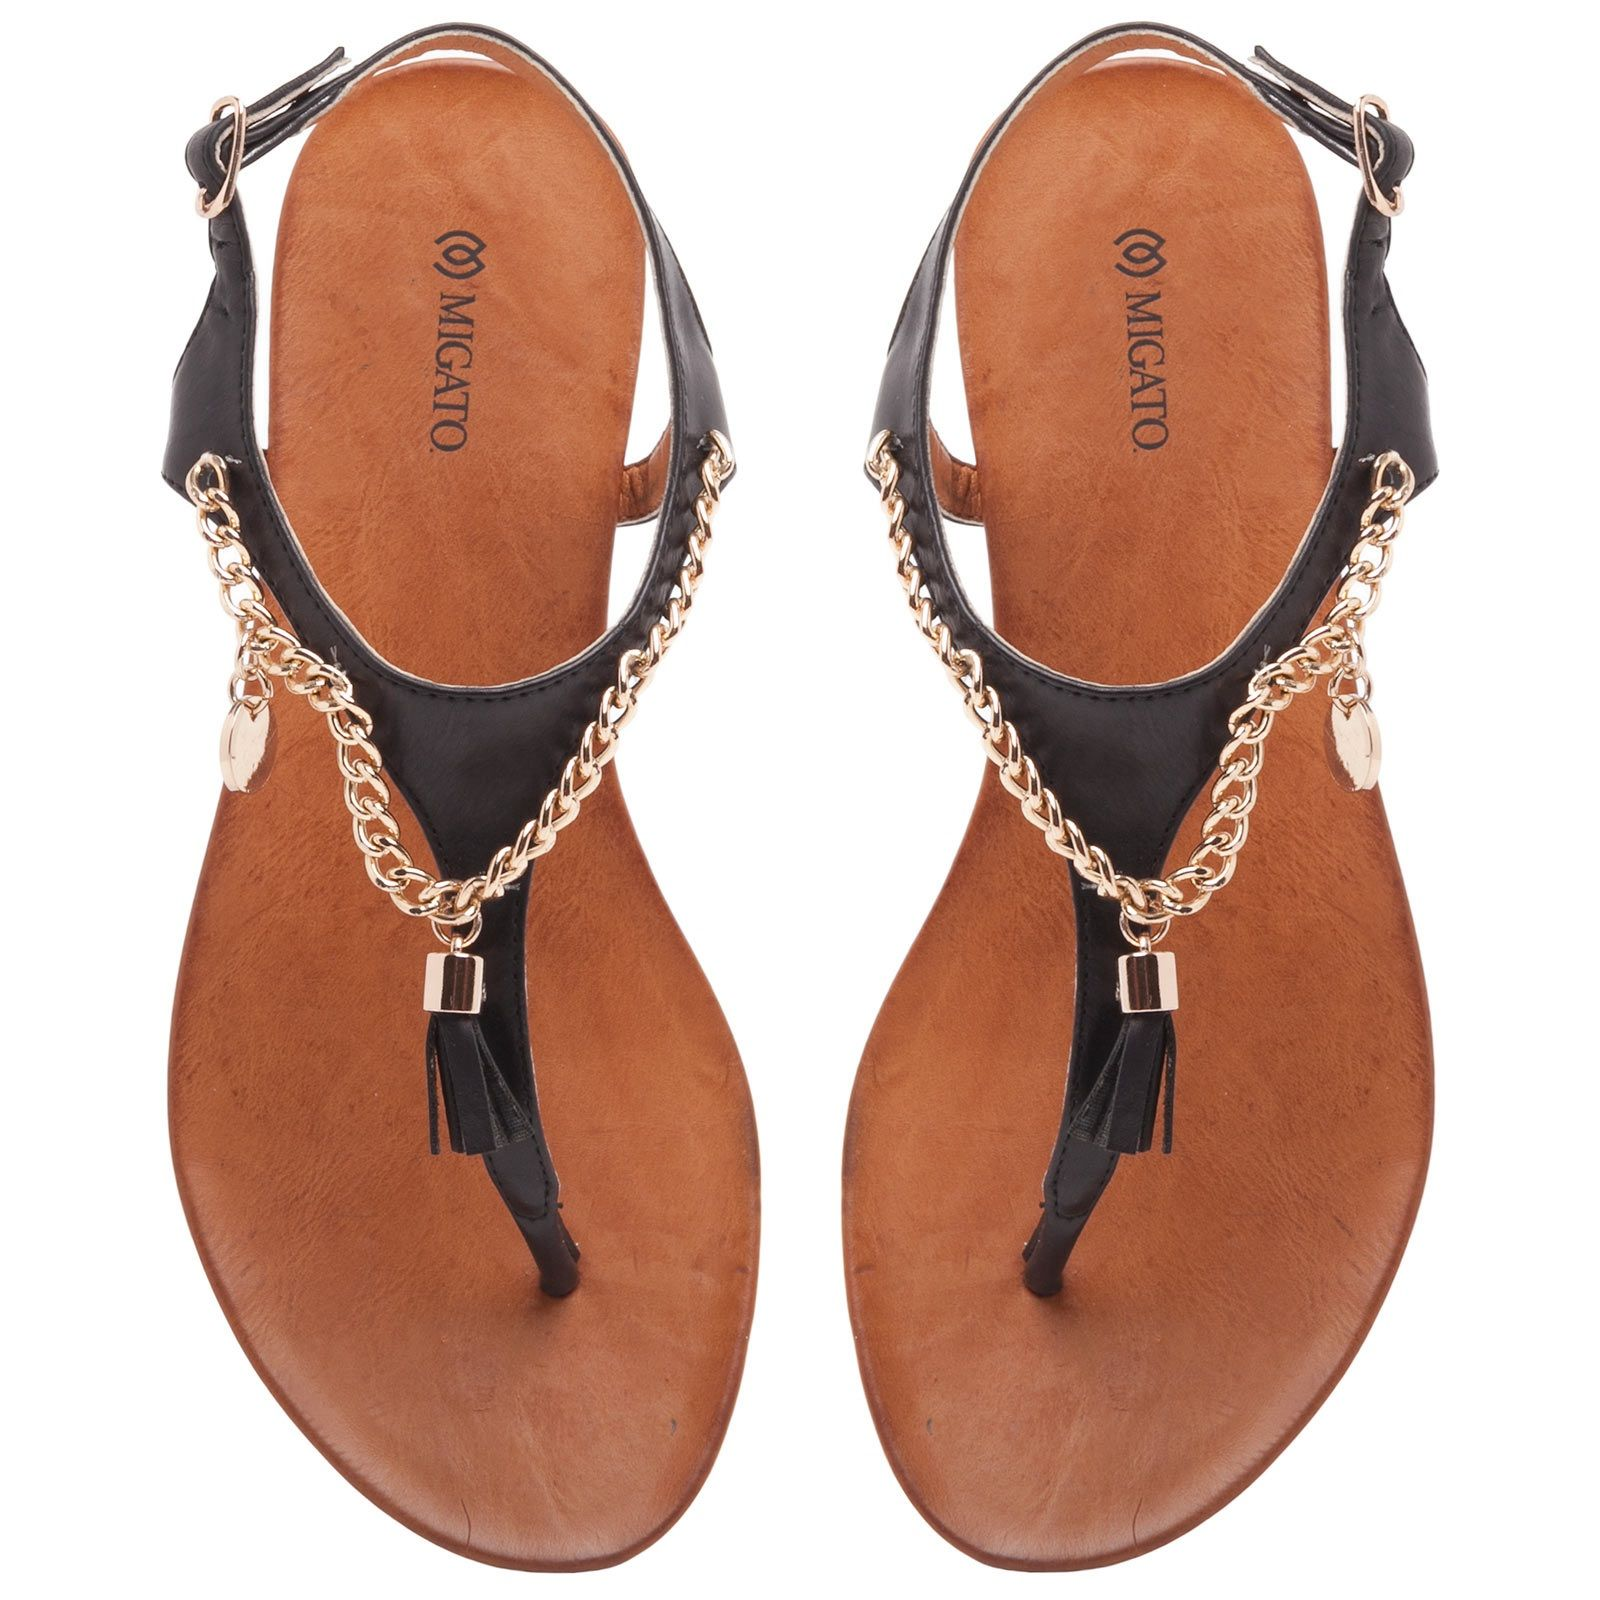 Black Sandal With Gold Chain Flat Sandals Migato Flat Shoes Women Women Shoes Flats Sandals Black Sandals